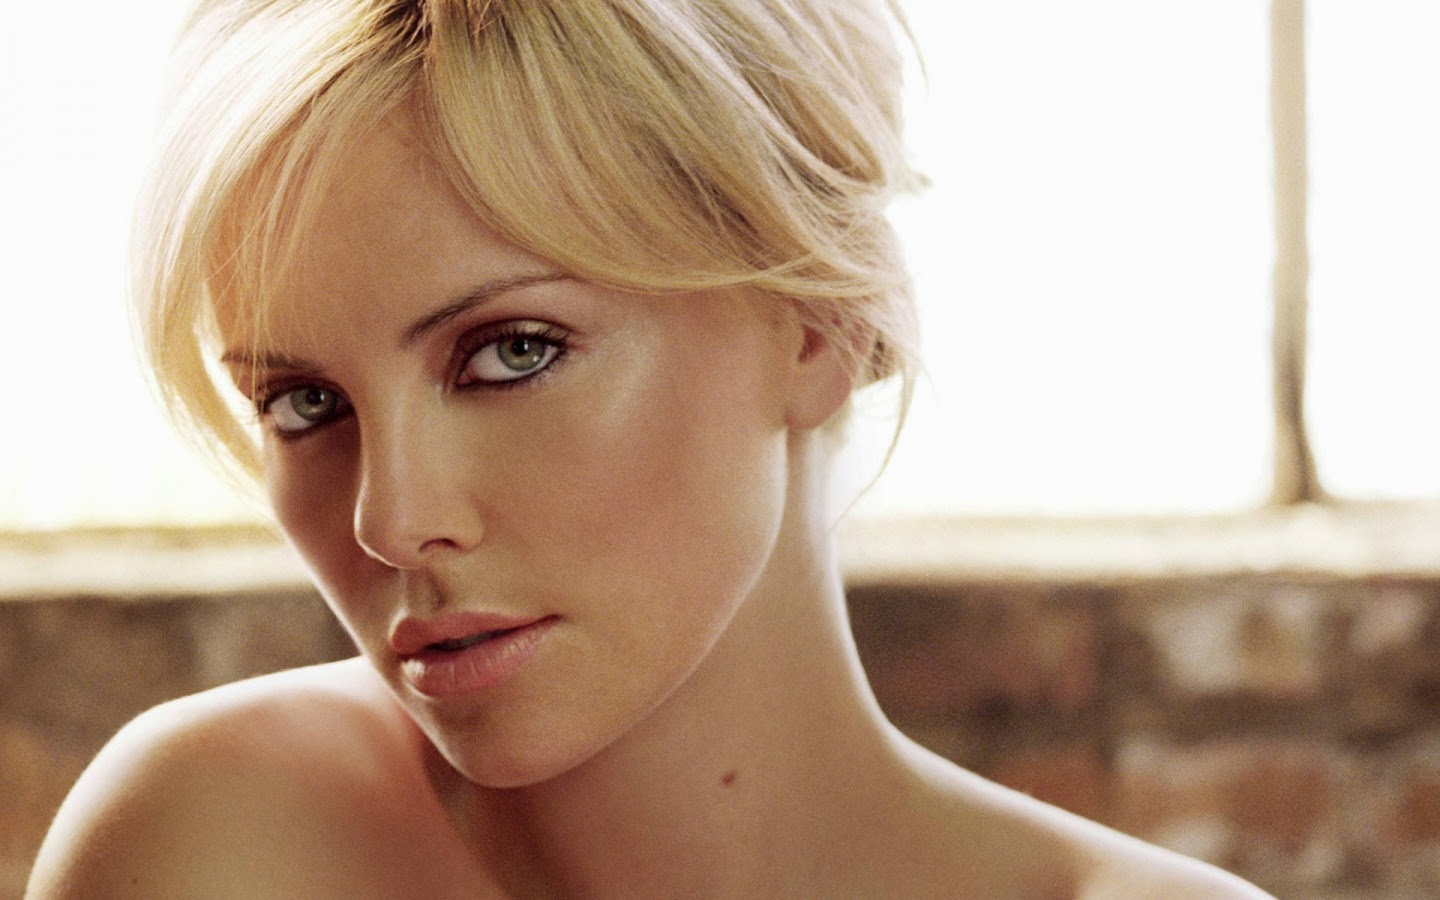 CHARLIZE THERON_WALLSTOWN_IN_HOLLYWOOD ACTRESS_HOLLYWOOD CELEBRITIES